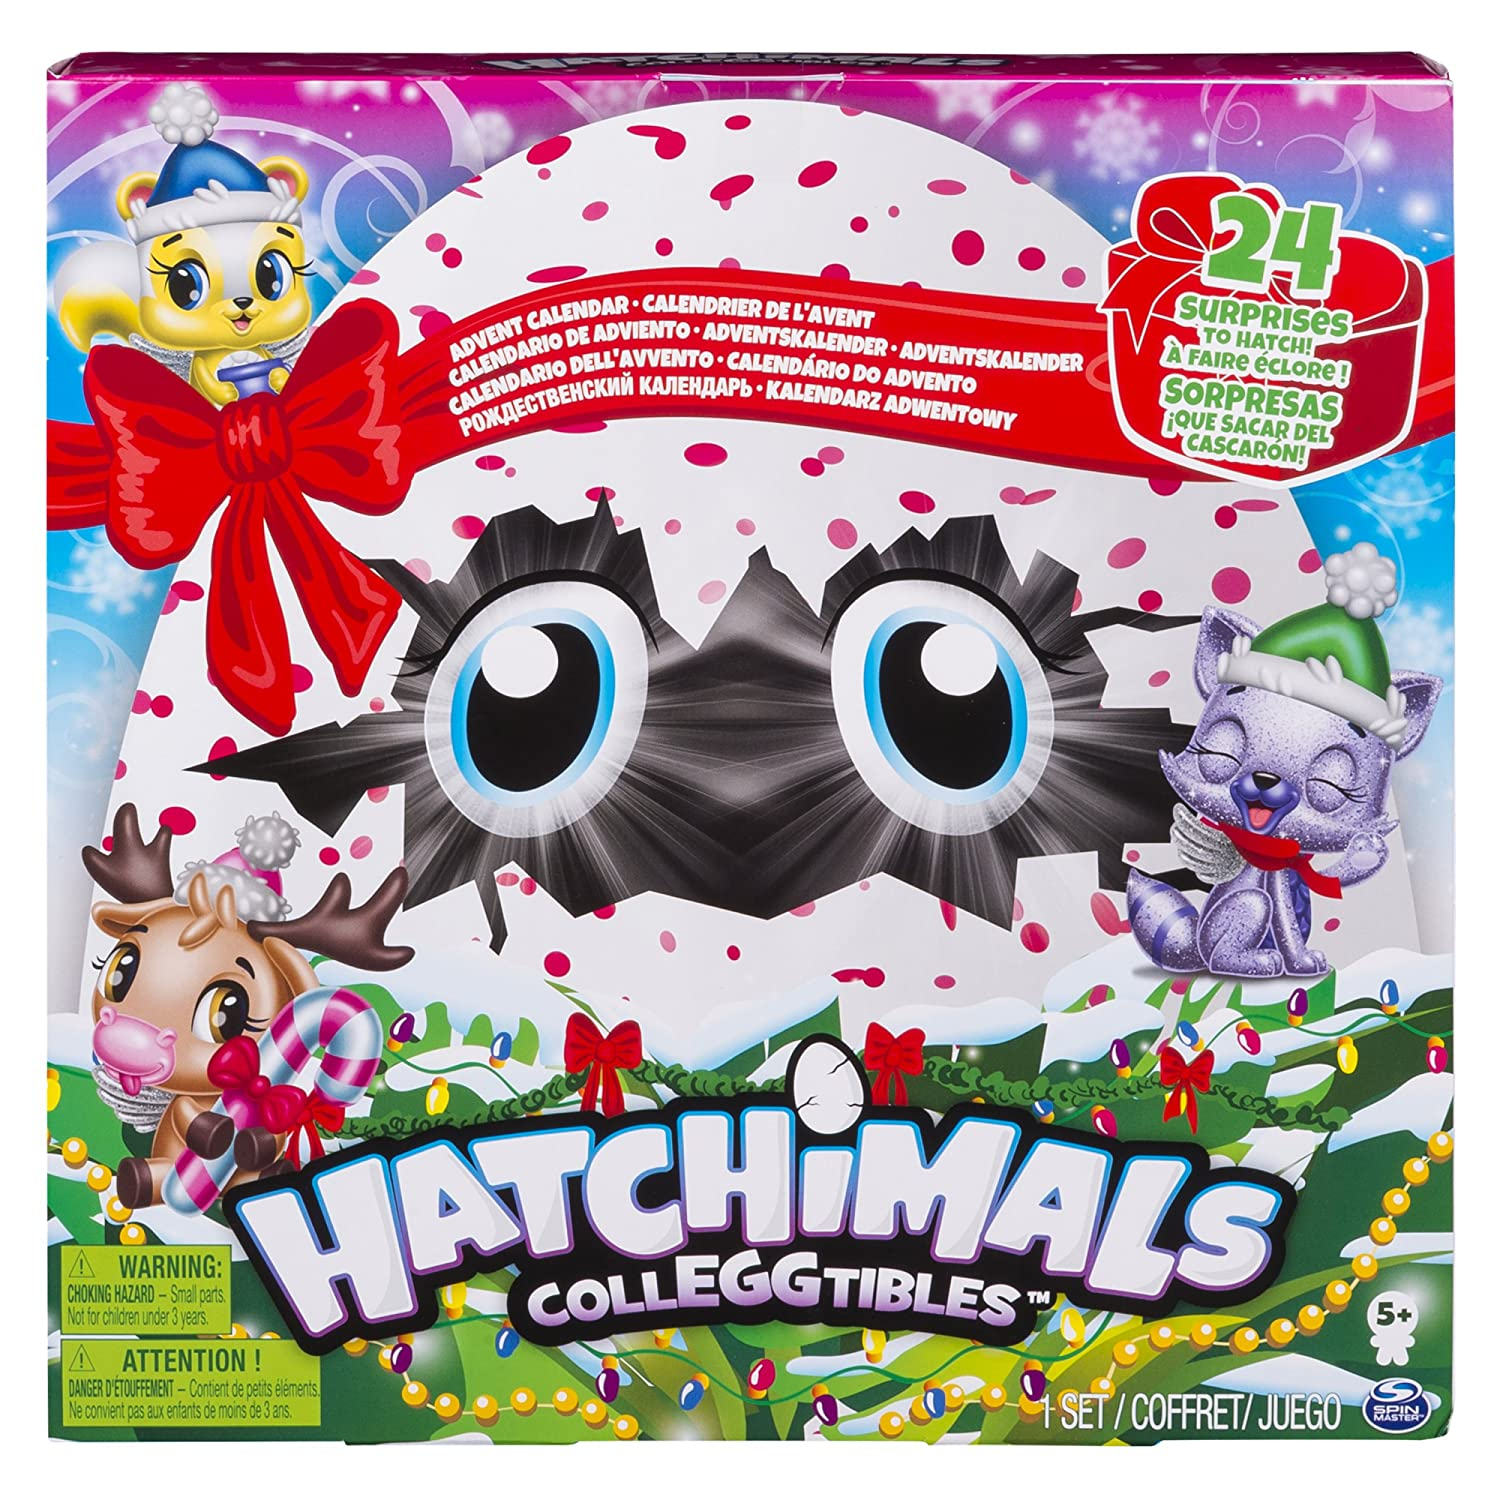 HATCHIMALS 6044284 Hatchimals-6044284-Hatchimals Colleggtibles Adventskalender, Multicolour